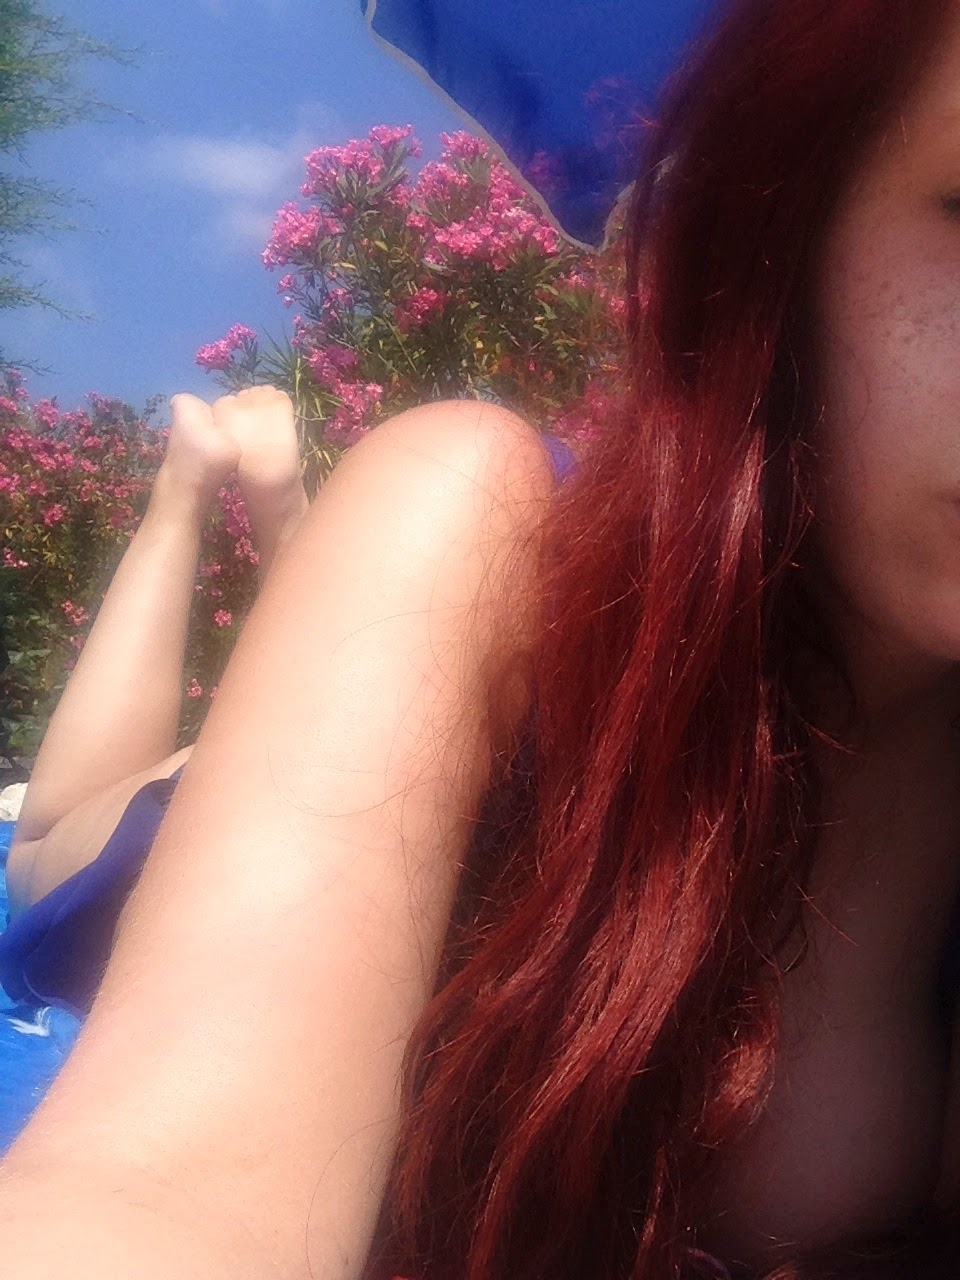 a picture of a girl with bright red hair lounging on a sun lounger, in a bikini